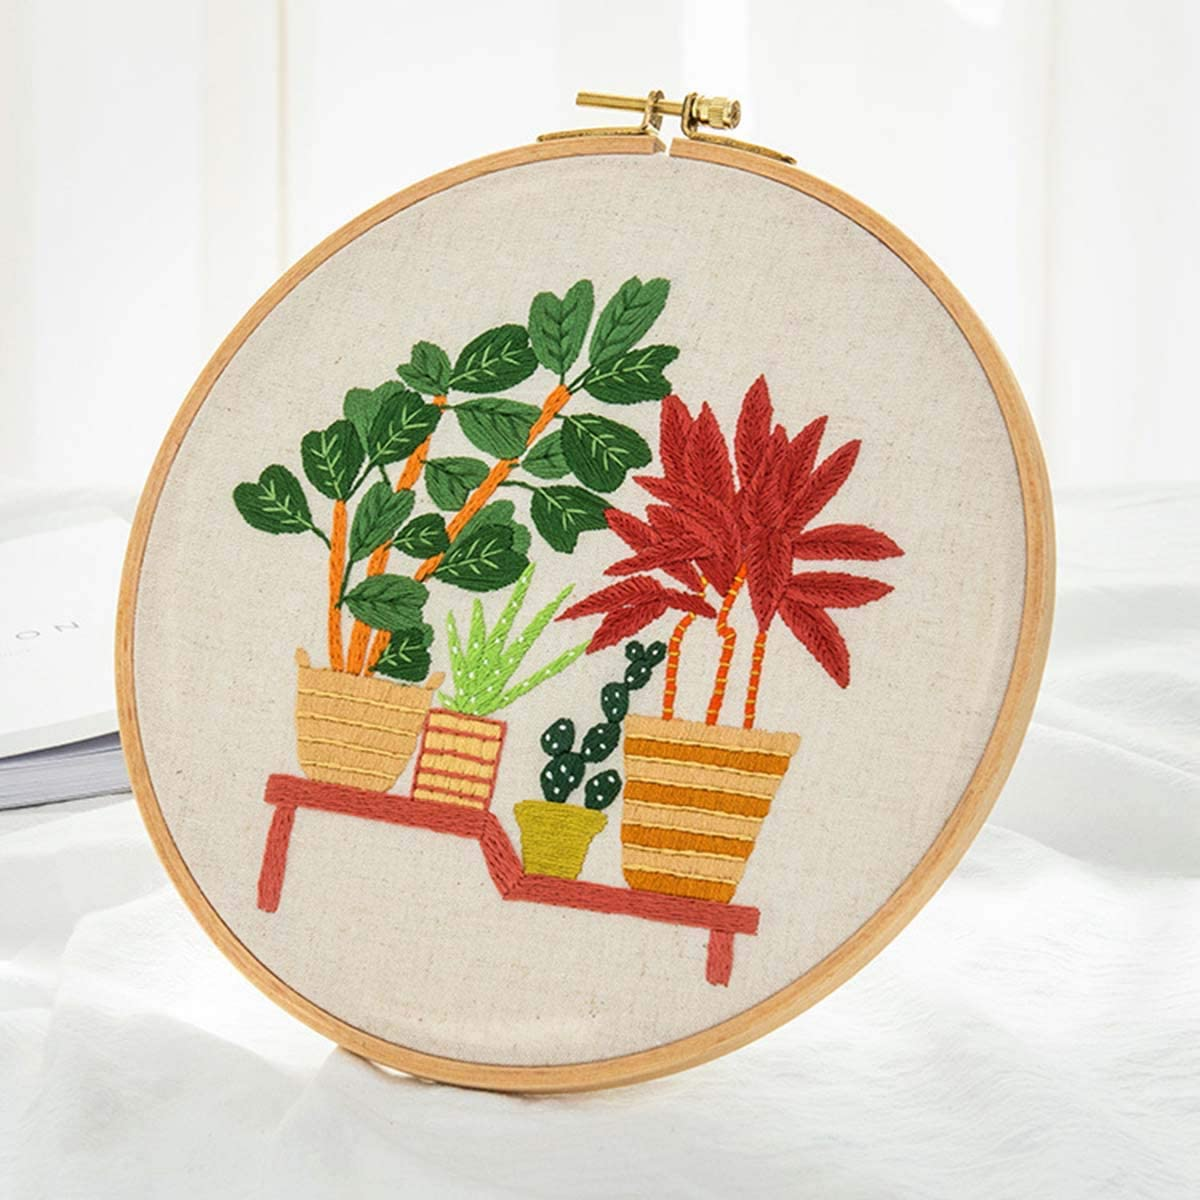 Hand Embroidery Starter Kit Full Range Cross Stitch Set of Stamped with Floral Pattern Embroidery Hoop Color Threads Tools Kit and Instructions (Flower) E-27